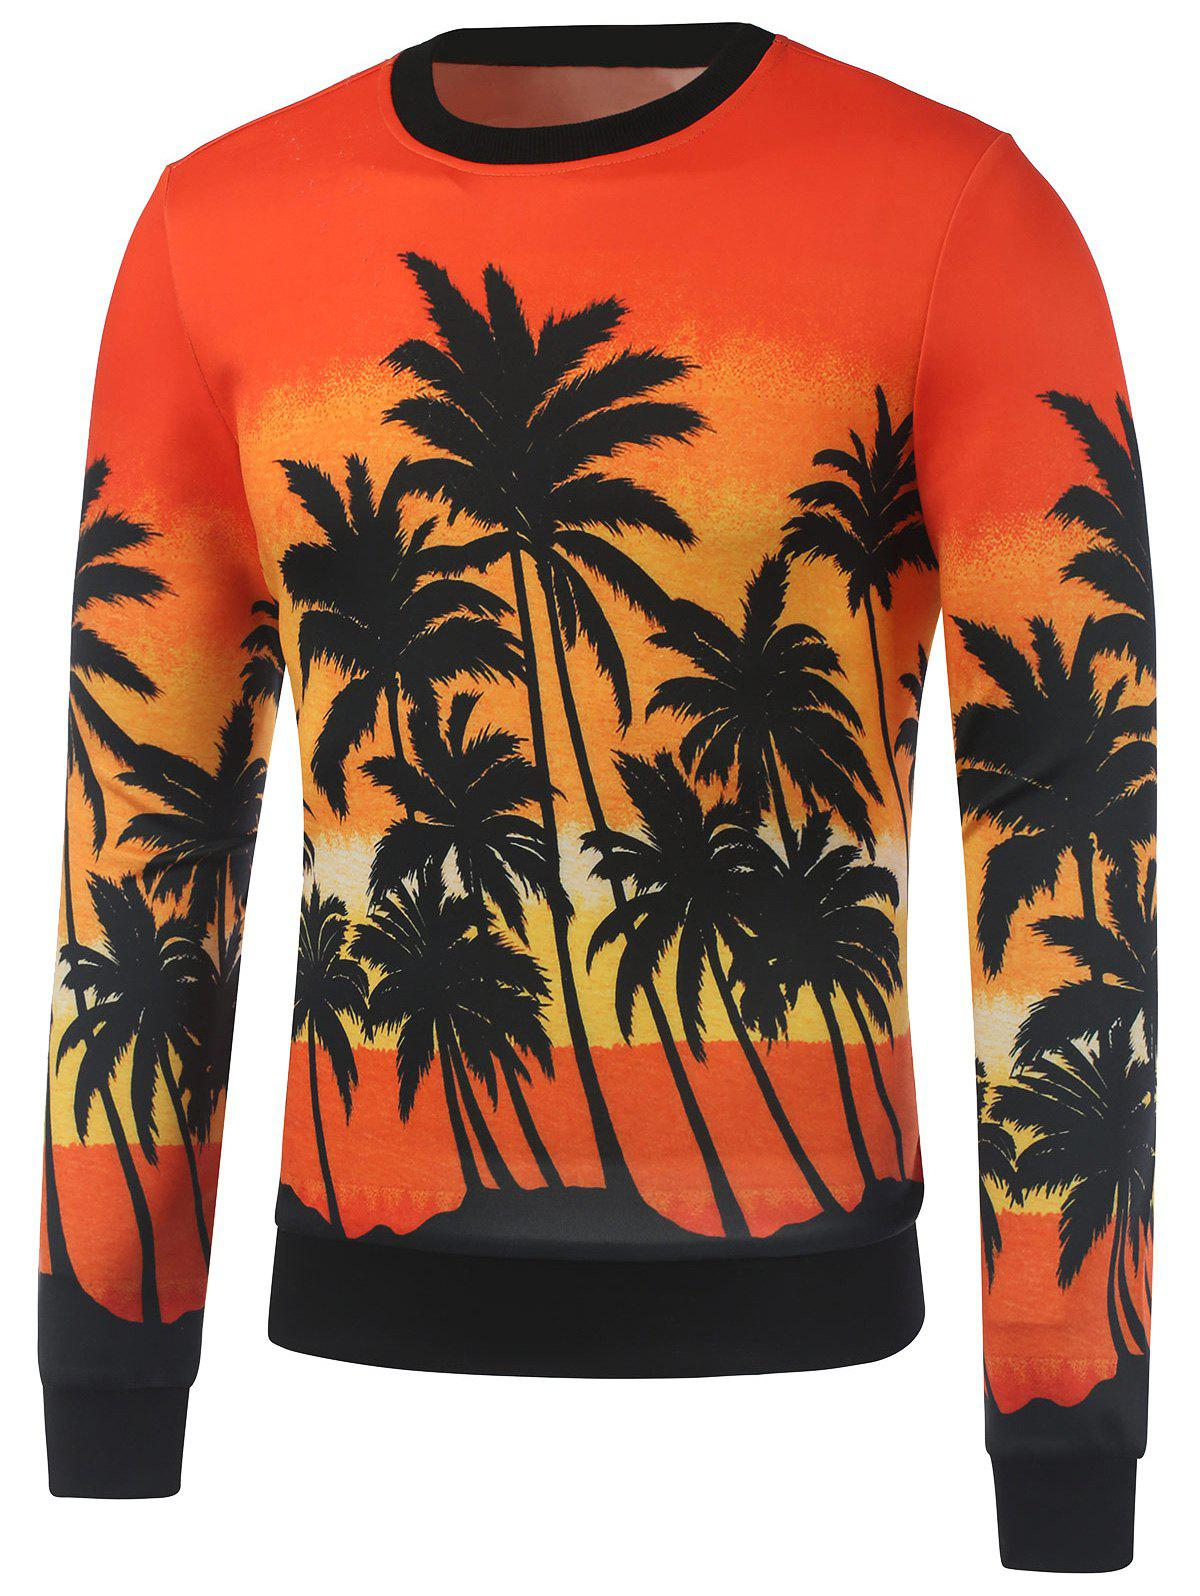 Crew Neck Coconut Tree Printed Sweatshirt - ORANGE M